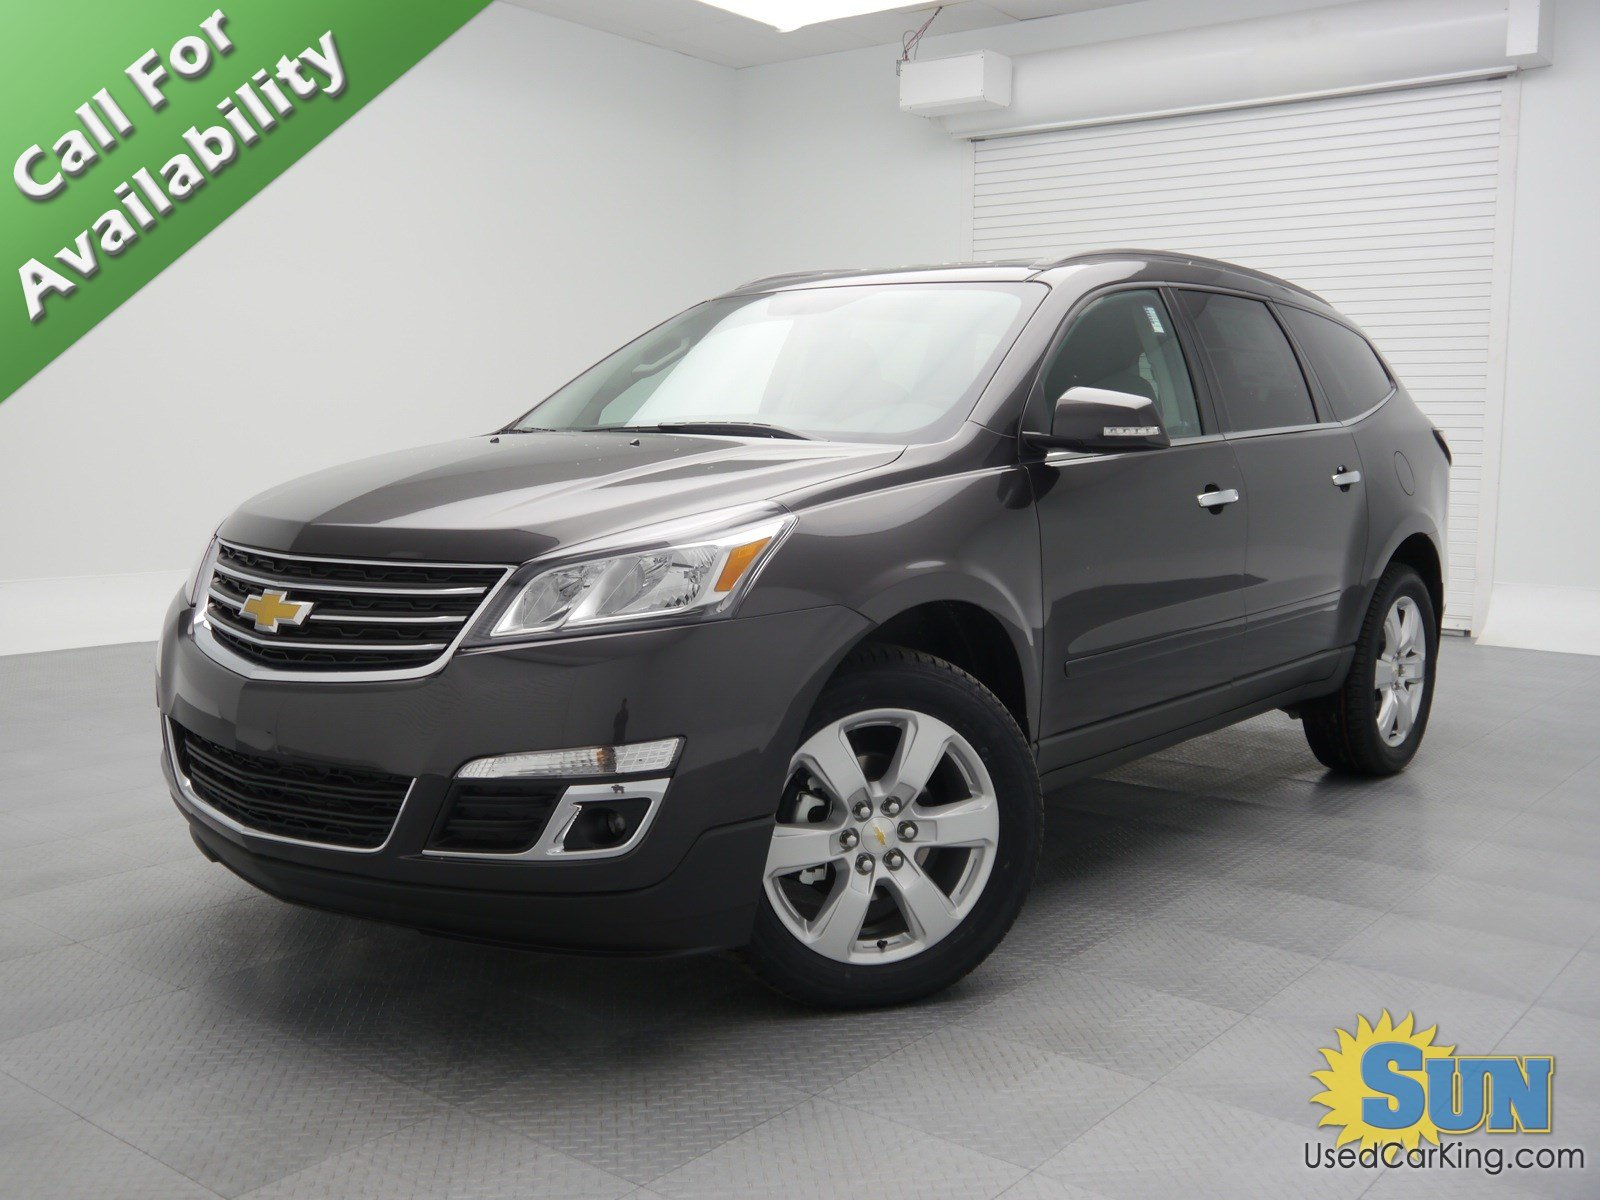 new 2017 chevrolet traverse lt awd sport utility chittenango nt70500 chittenango ny used car. Black Bedroom Furniture Sets. Home Design Ideas